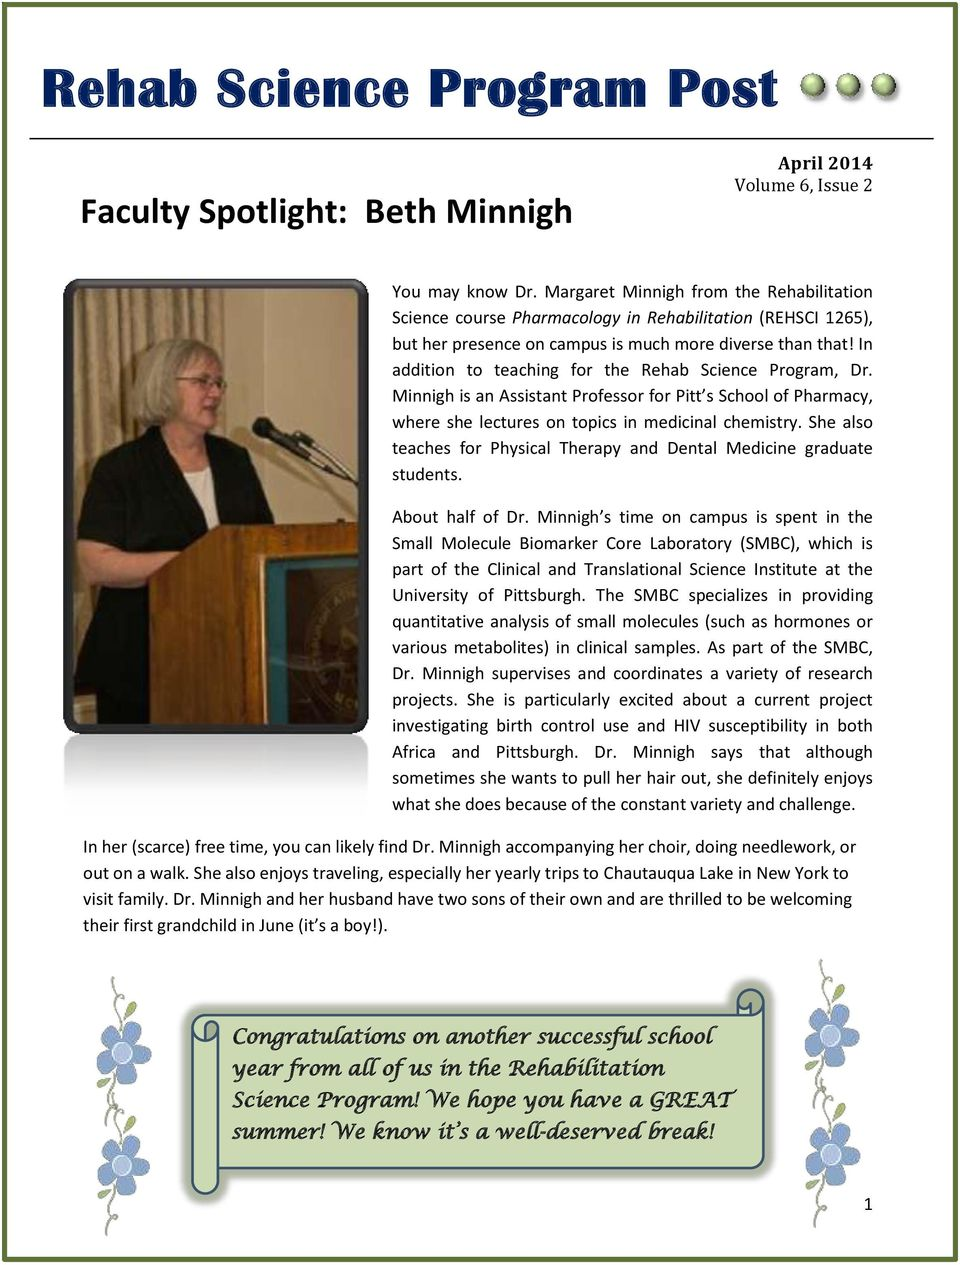 In addition to teaching for the Rehab Science Program, Dr. Minnigh is an Assistant Professor for Pitt s School of Pharmacy, where she lectures on topics in medicinal chemistry.